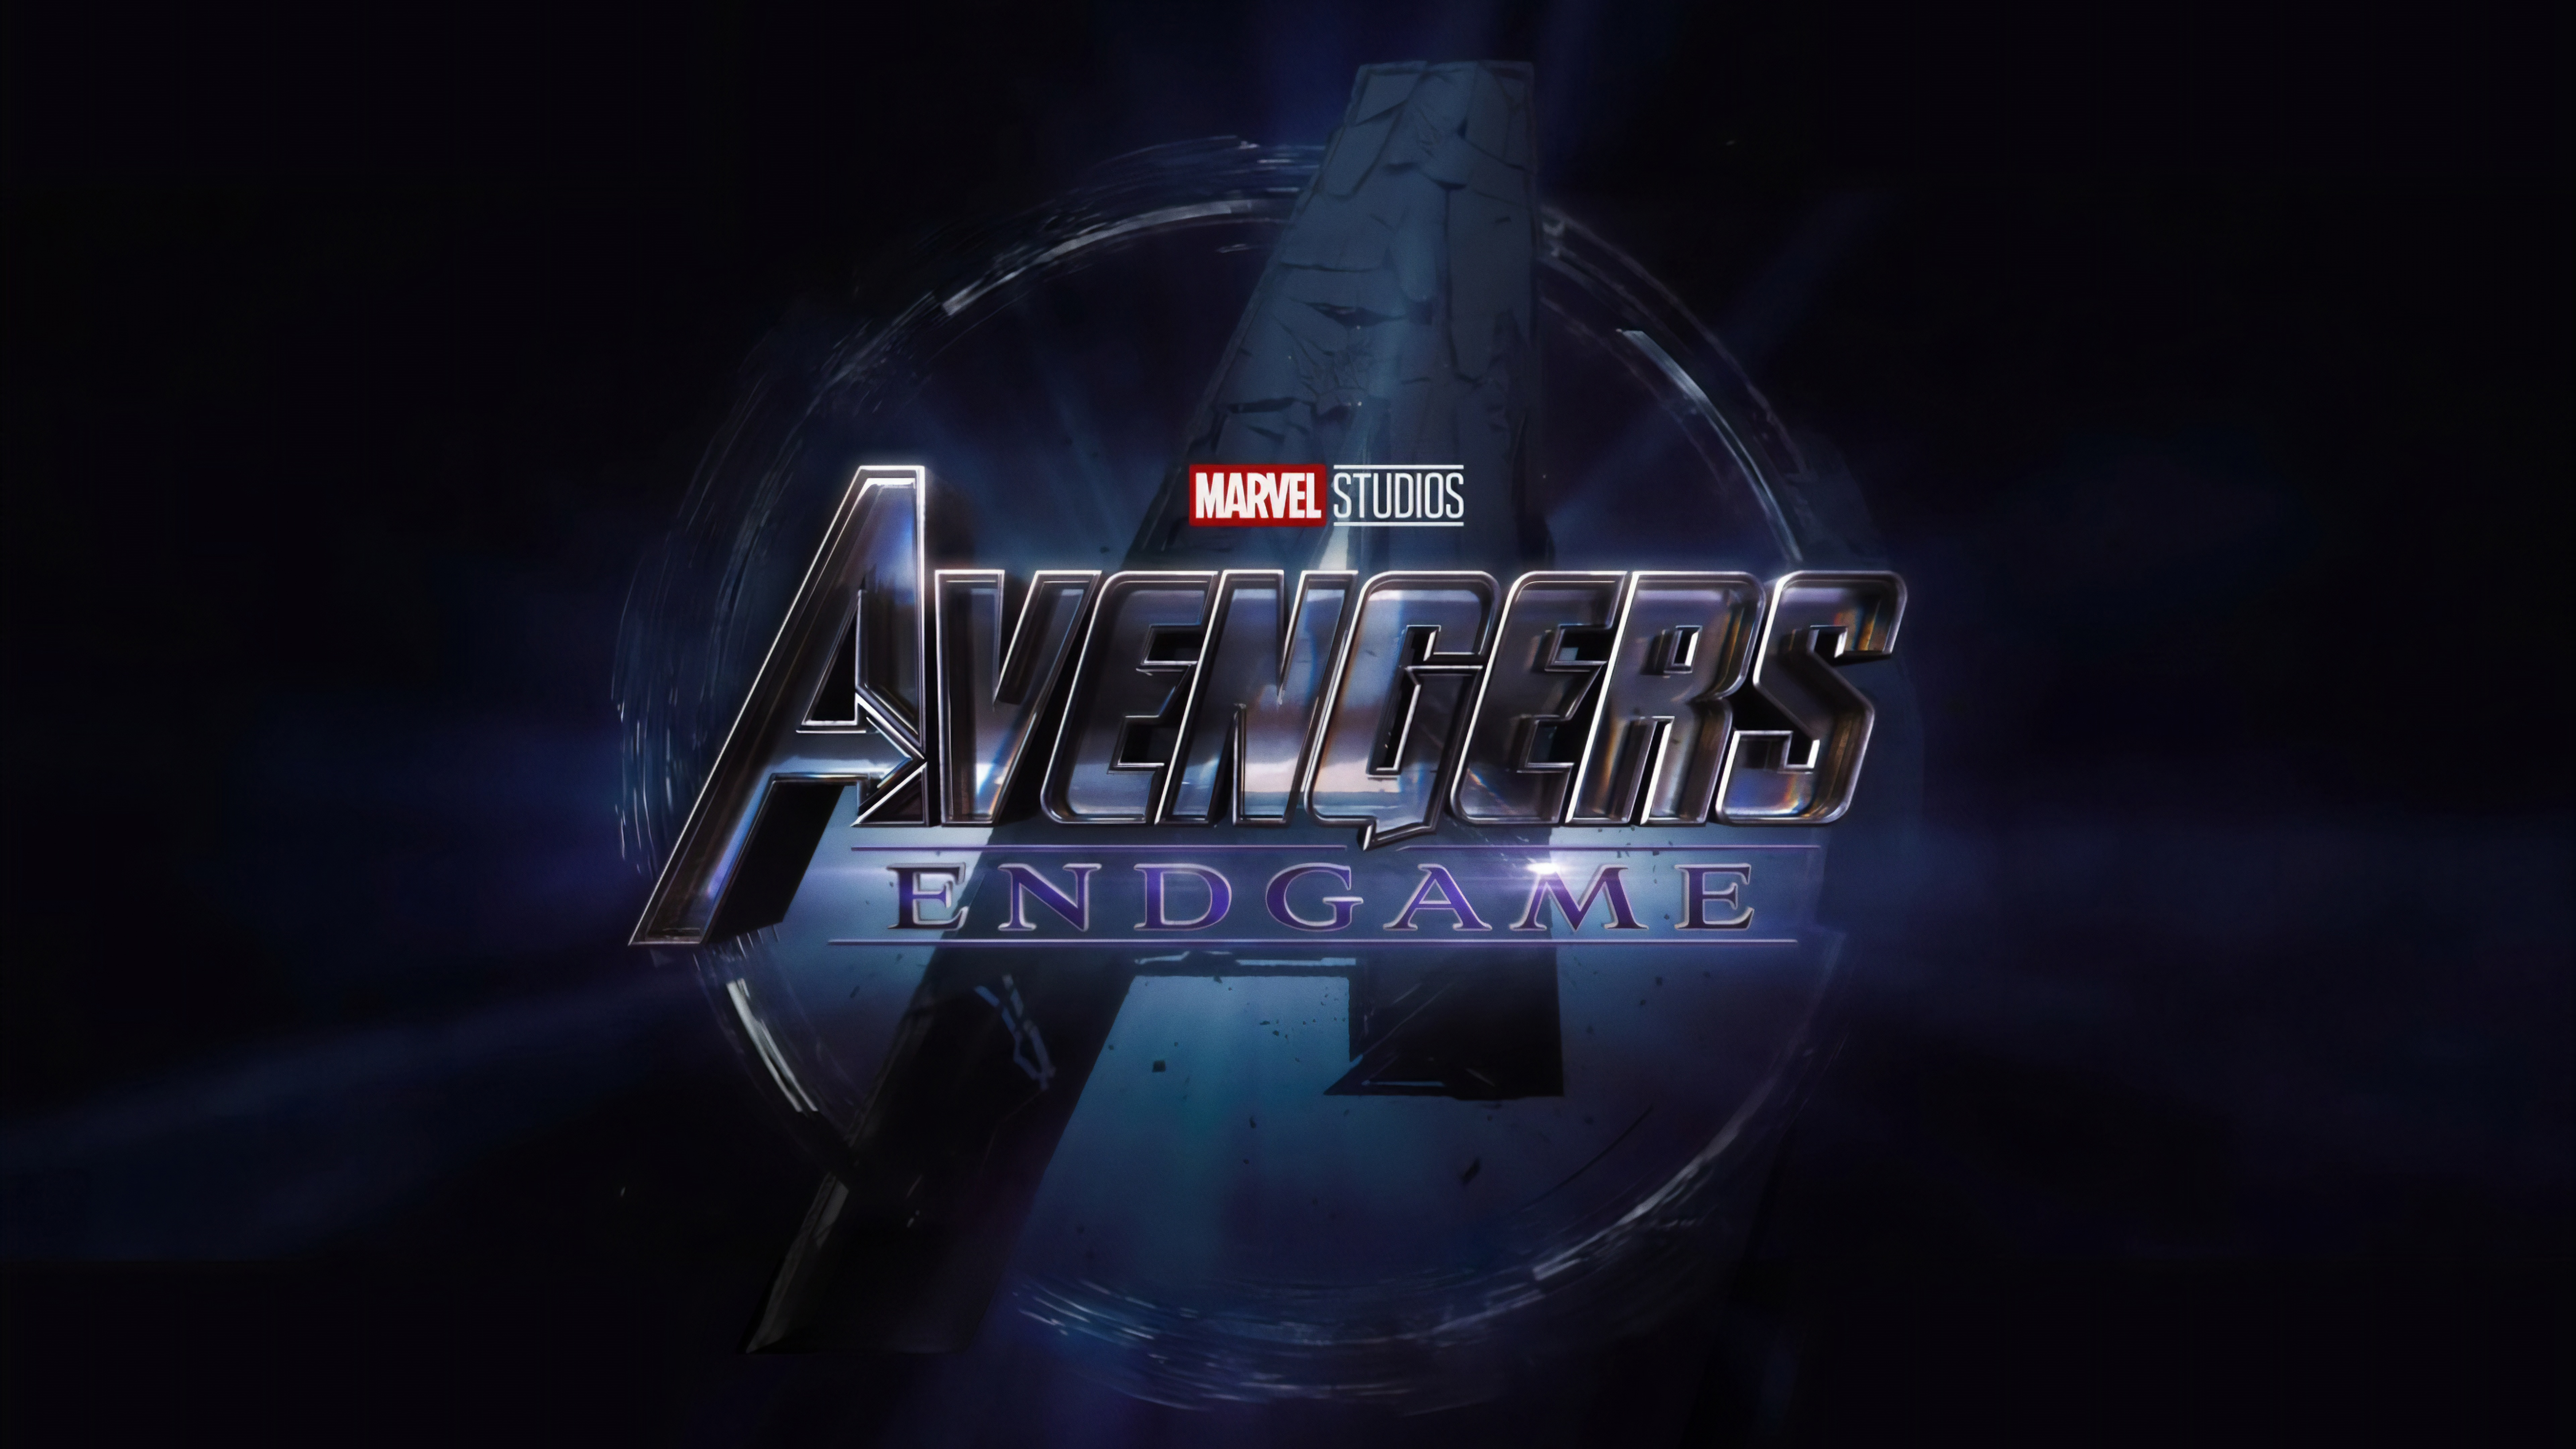 Best Avengers Endgame Wallpapers in HD